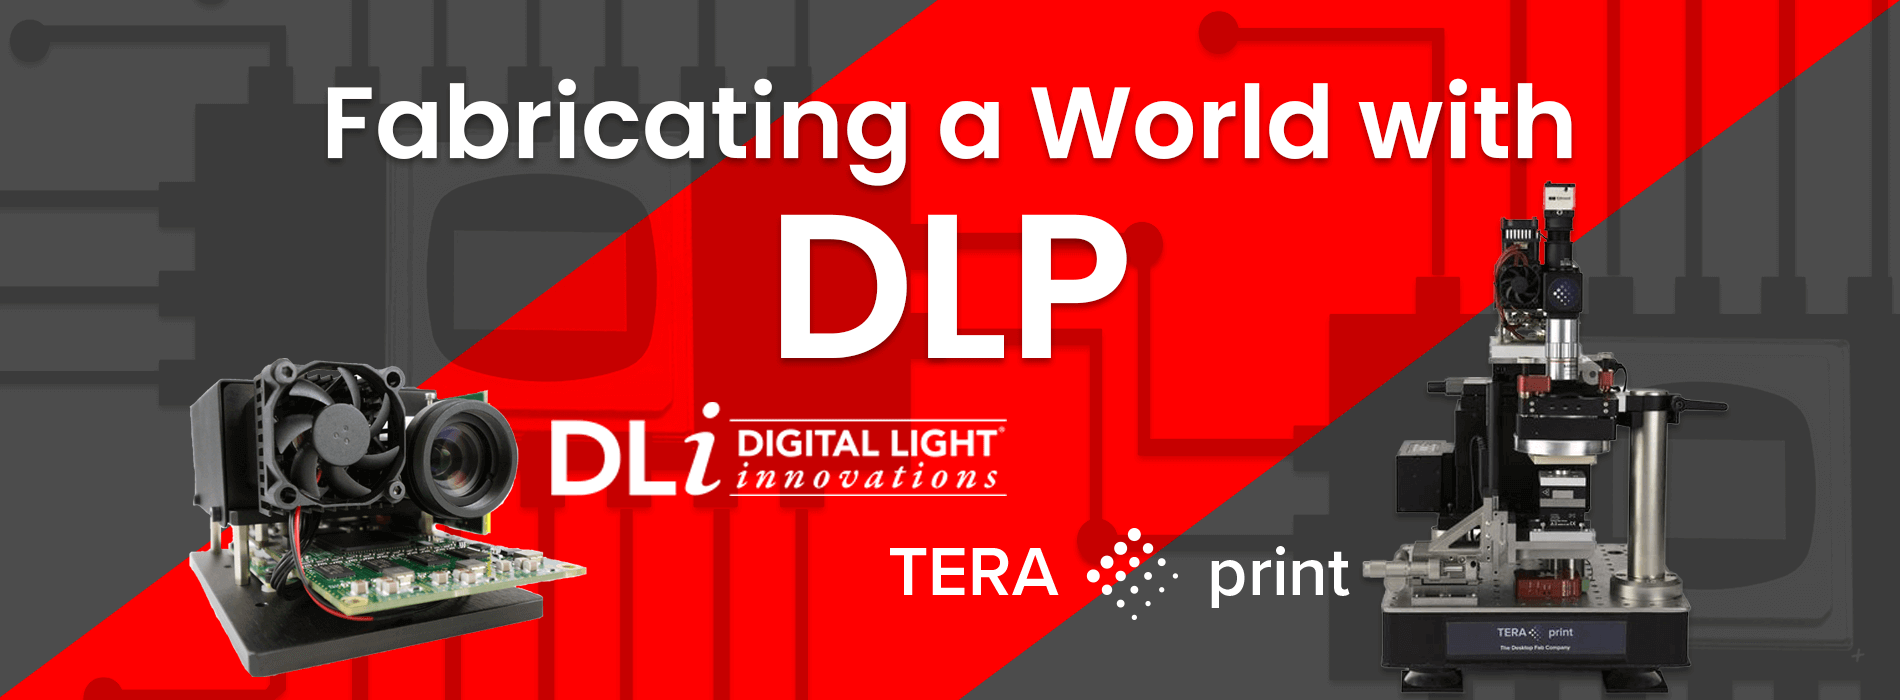 Fabricating a World with DLP